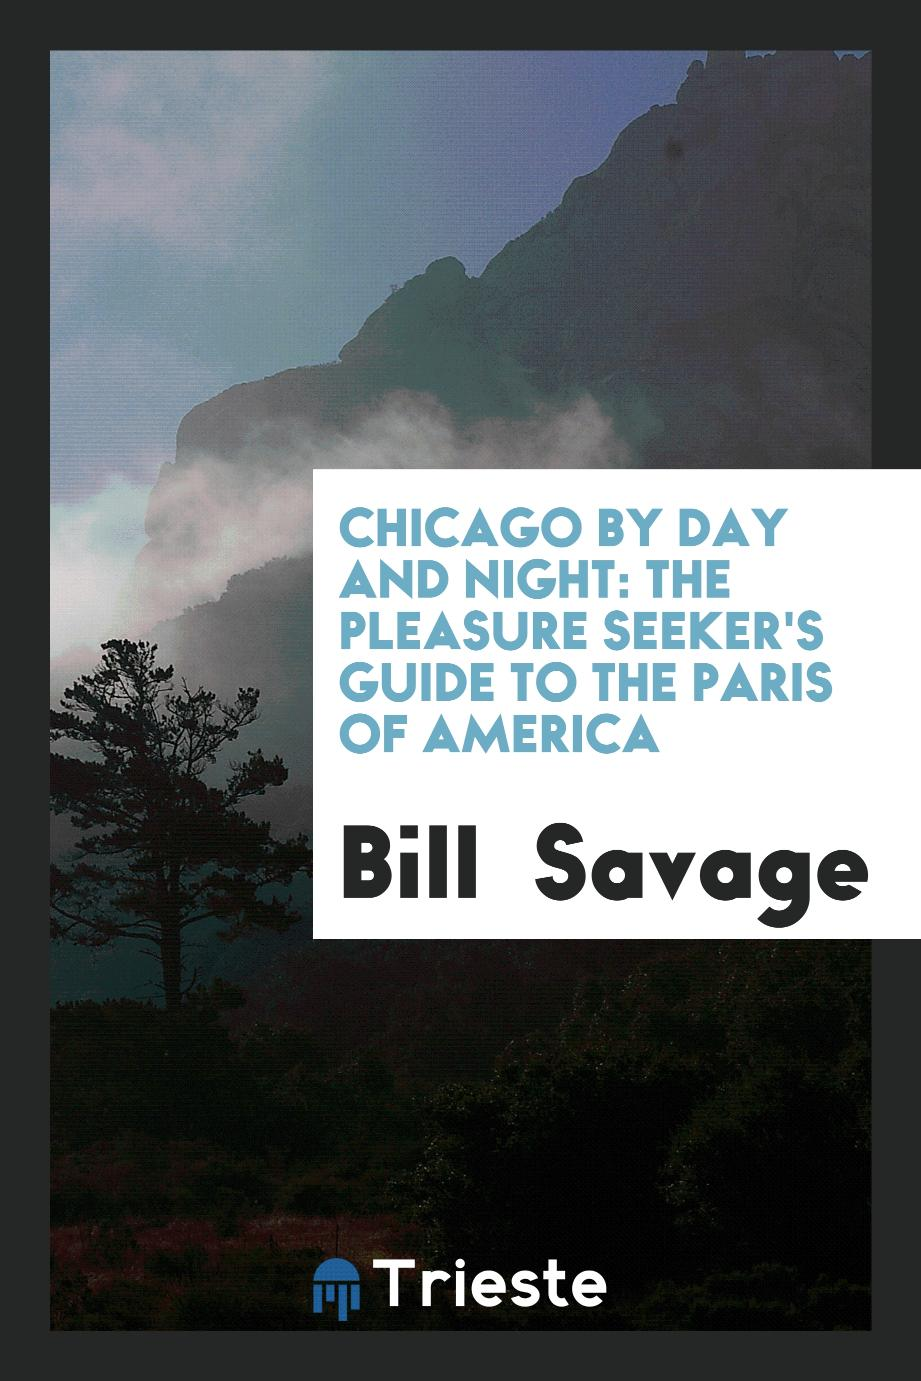 Chicago by day and night: the pleasure seeker's guide to the Paris of America